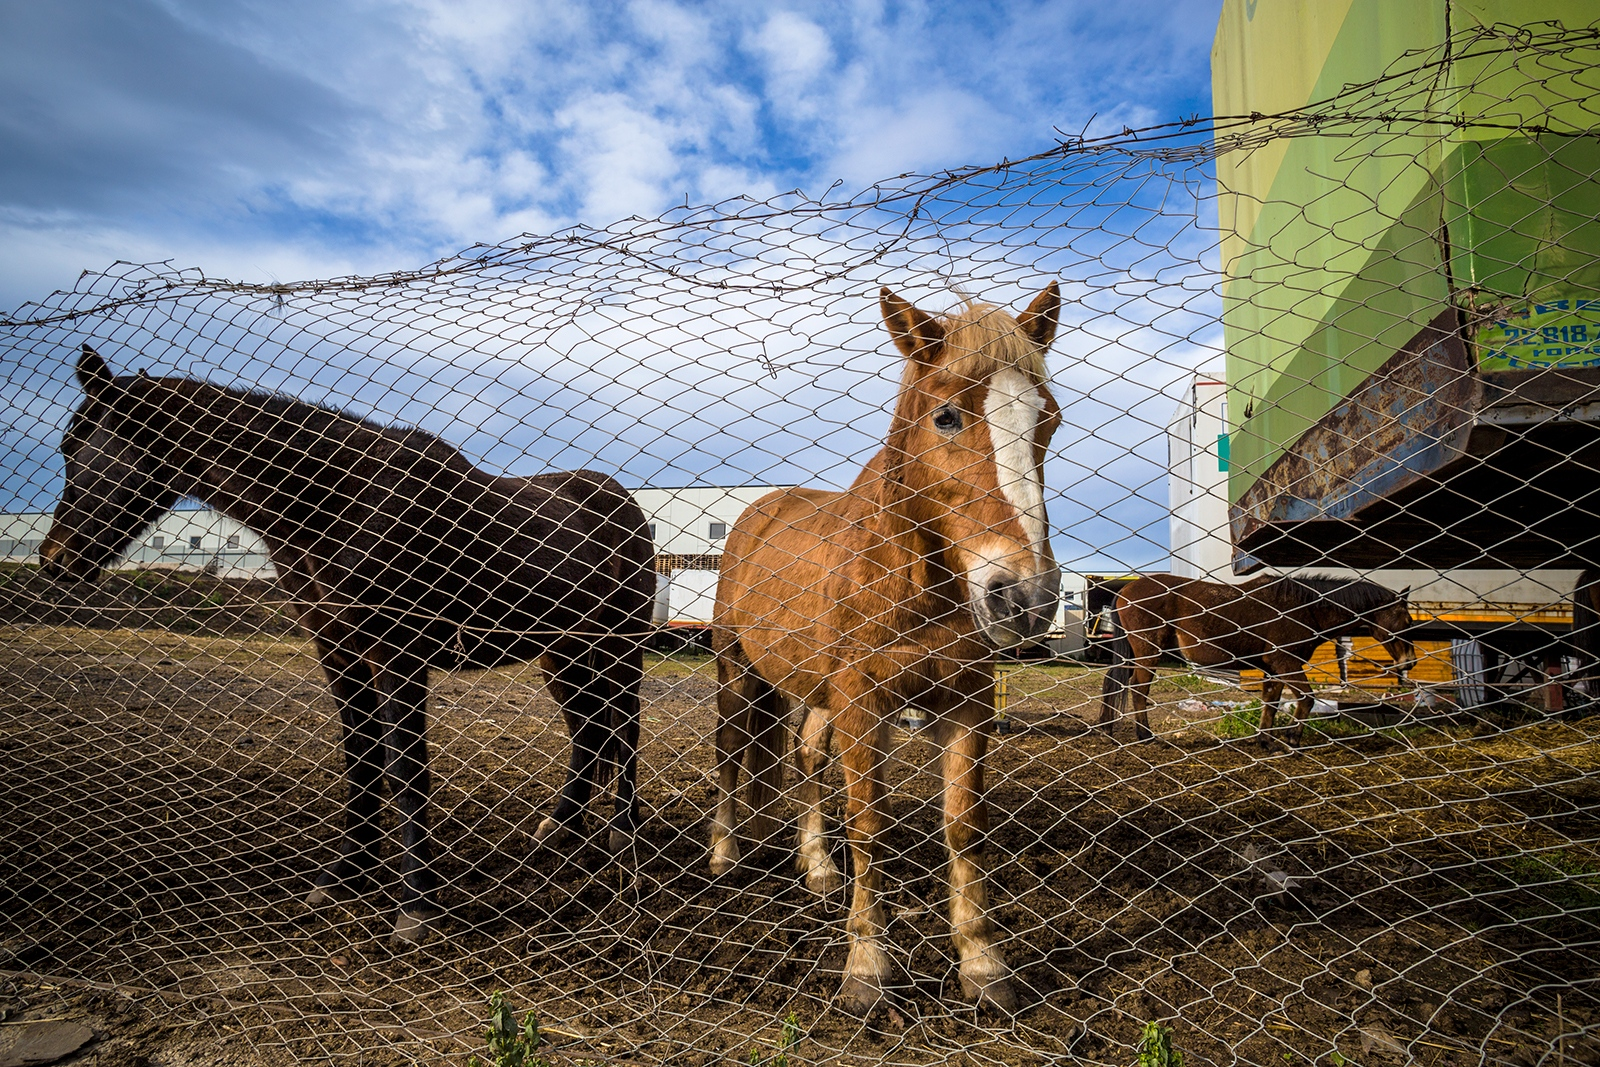 Some horses are kept within the grounds of a goods storage facility